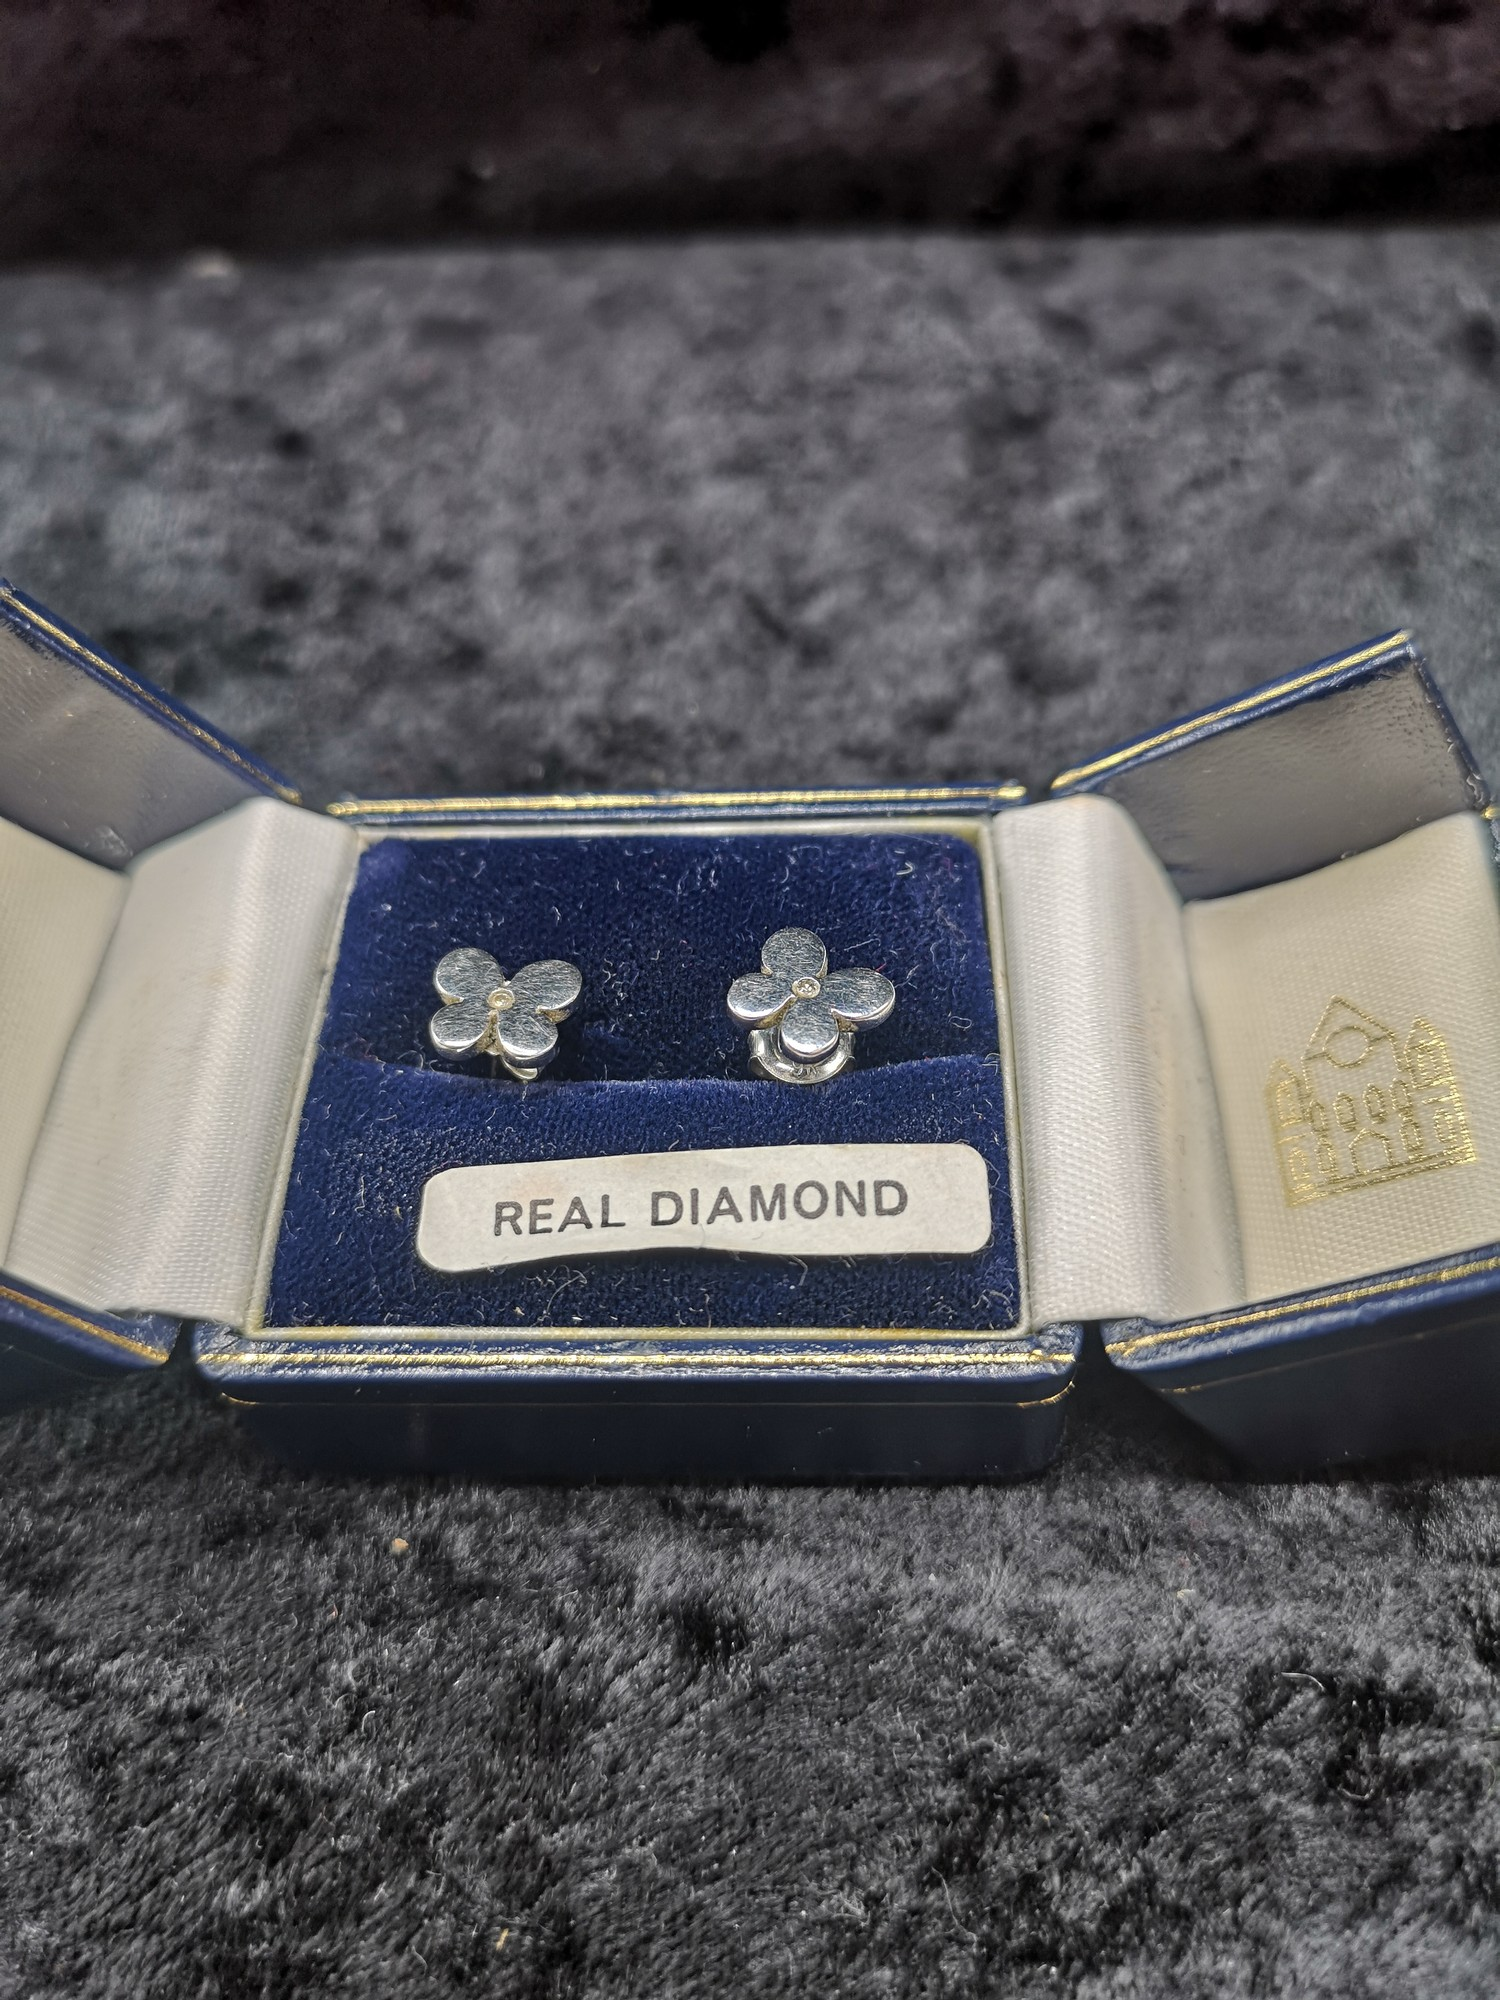 Pair of 9ct gold white 375 Hall Marked diamond earrings.